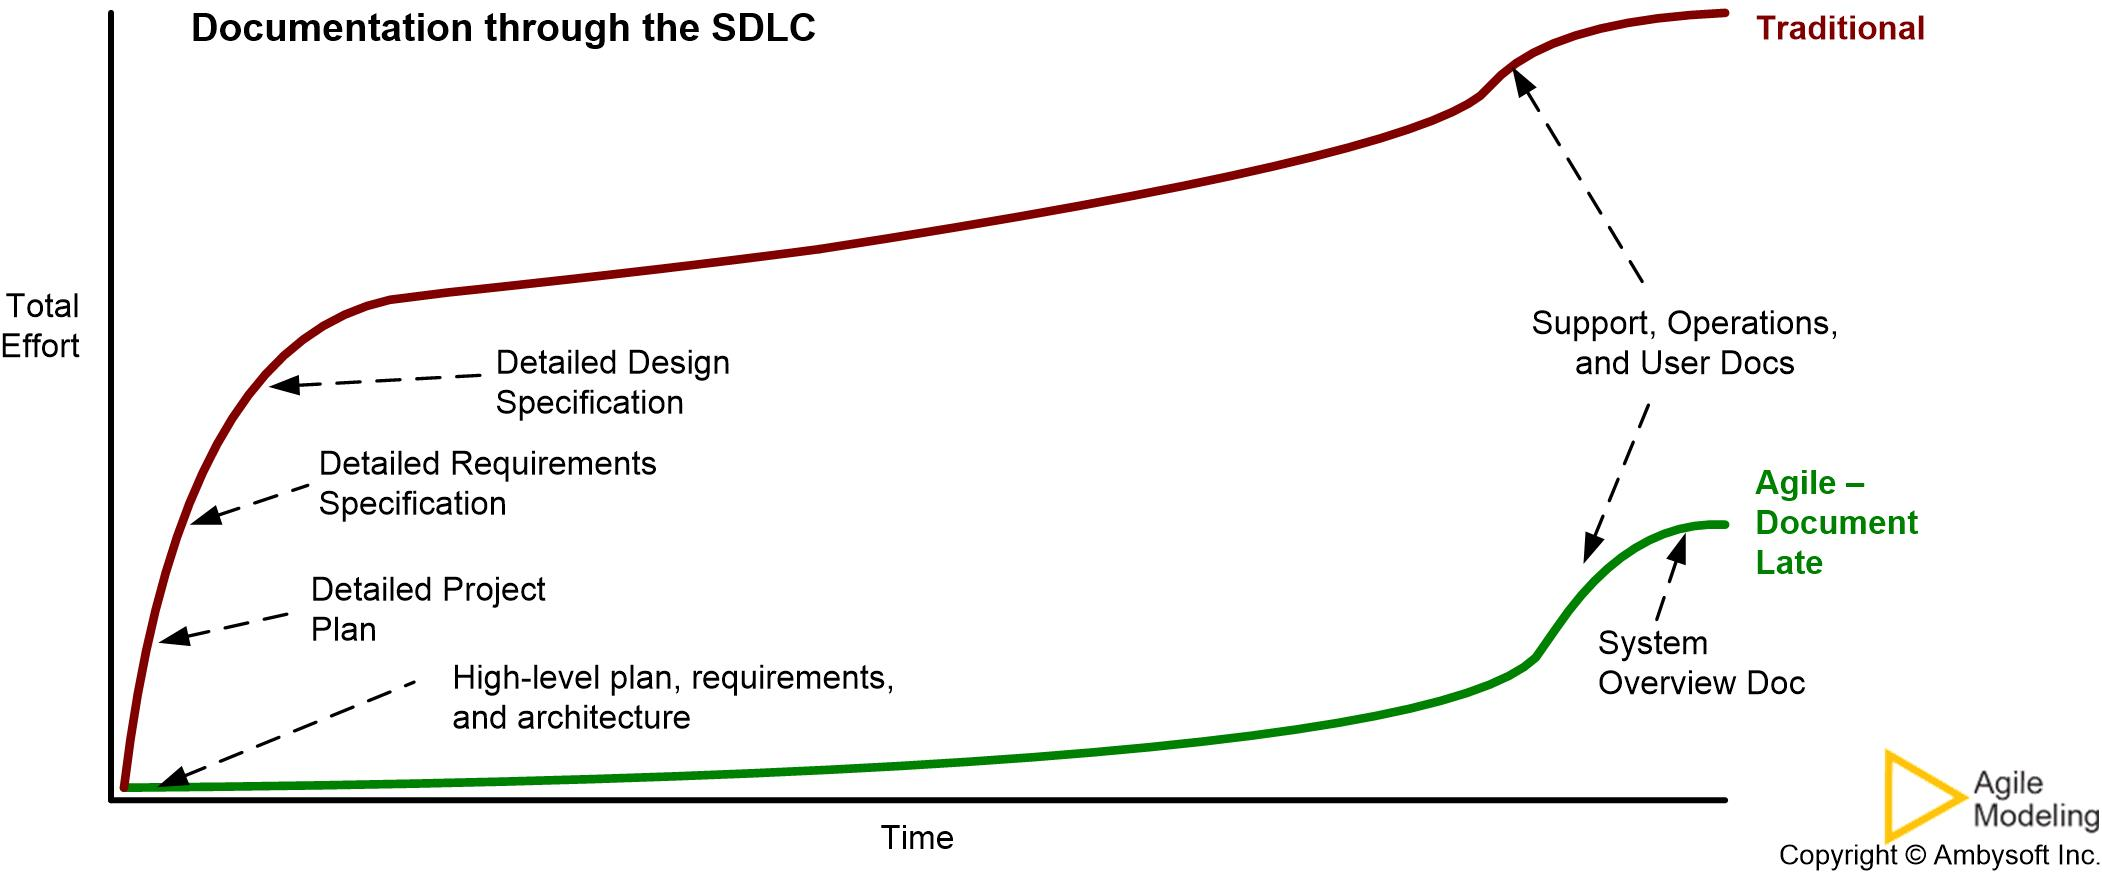 AgileLean Documentation Strategies For Agile Software Development